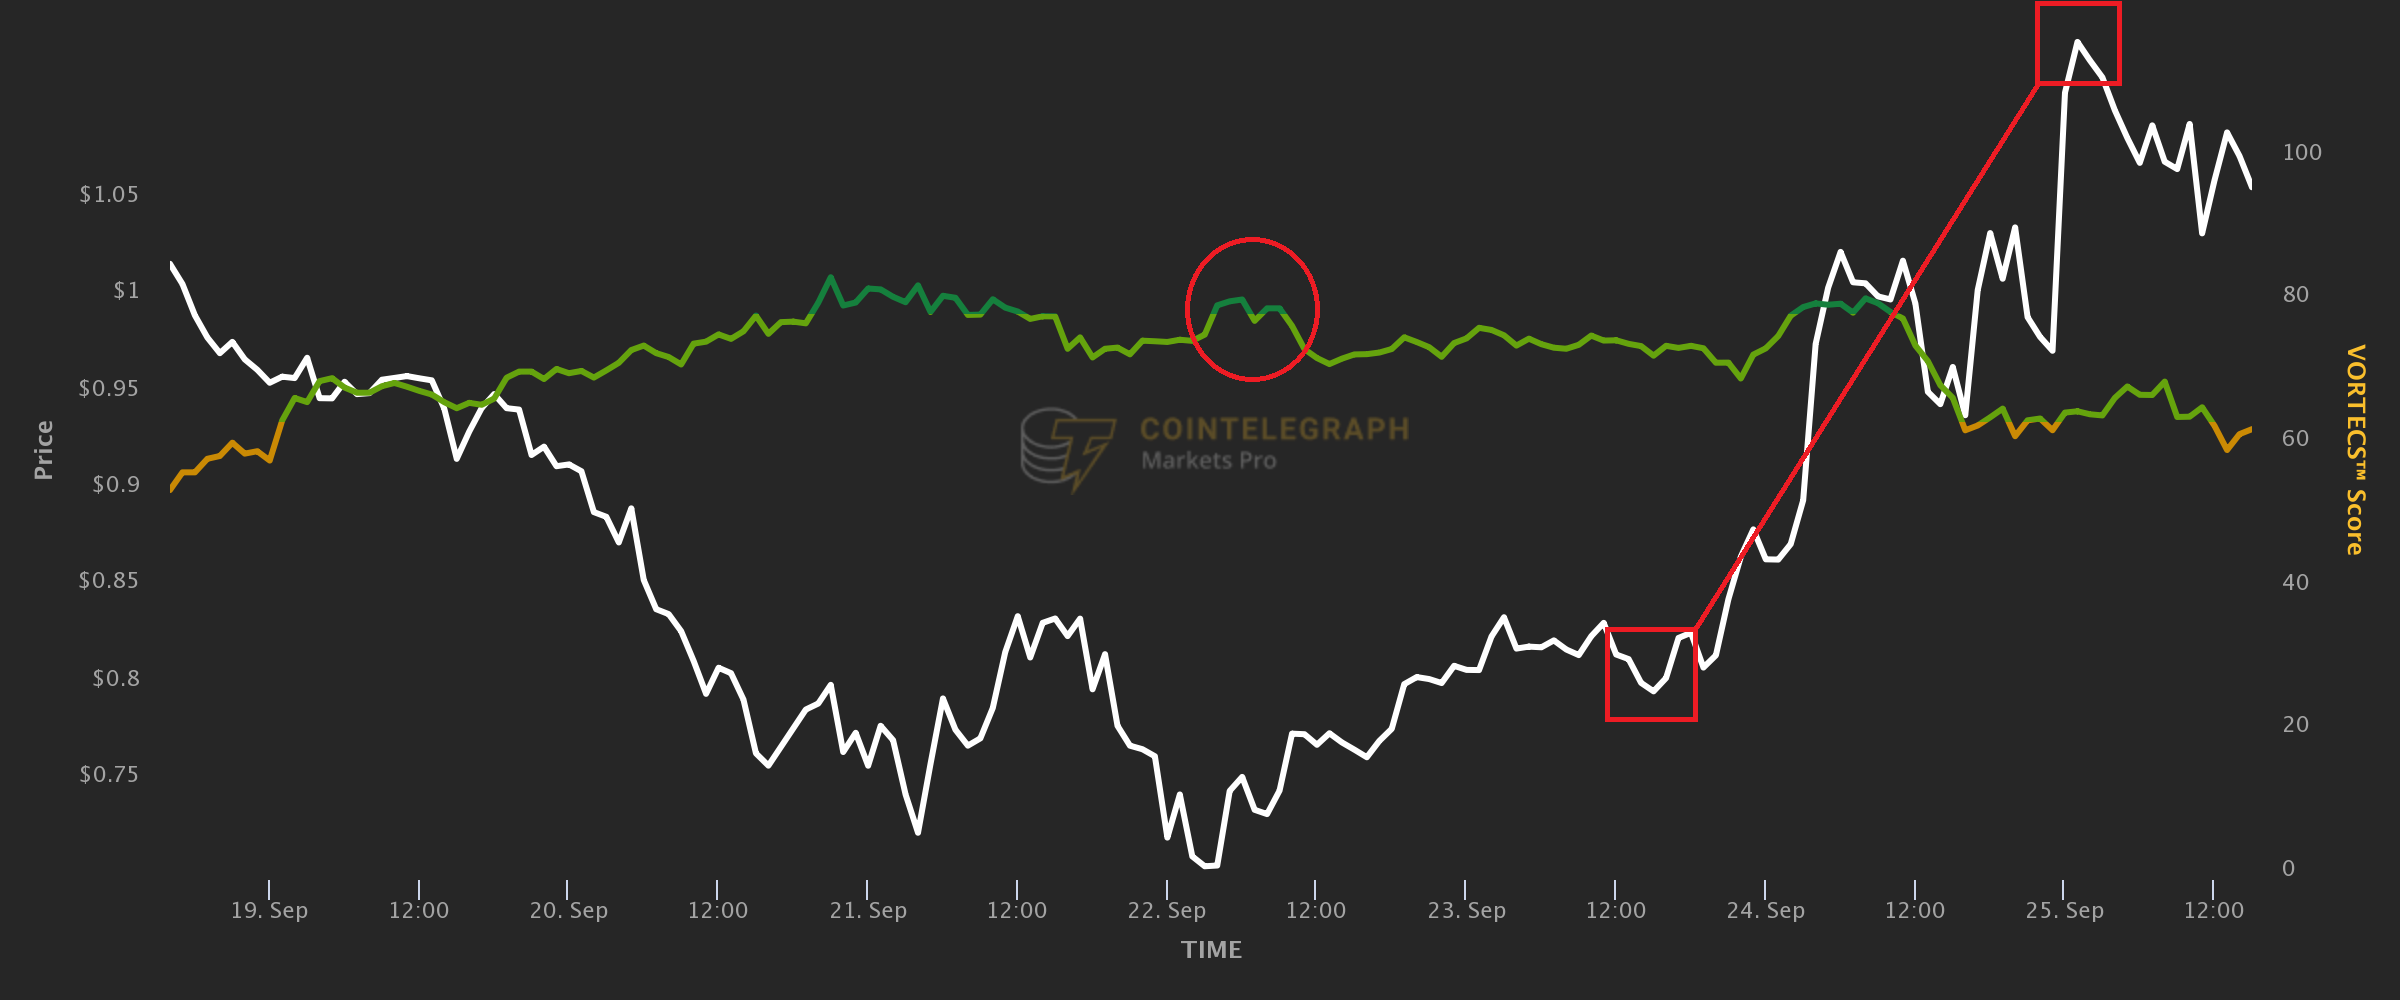 This key trading term spotted altcoin bullish patterns even when BTC price was around 11.